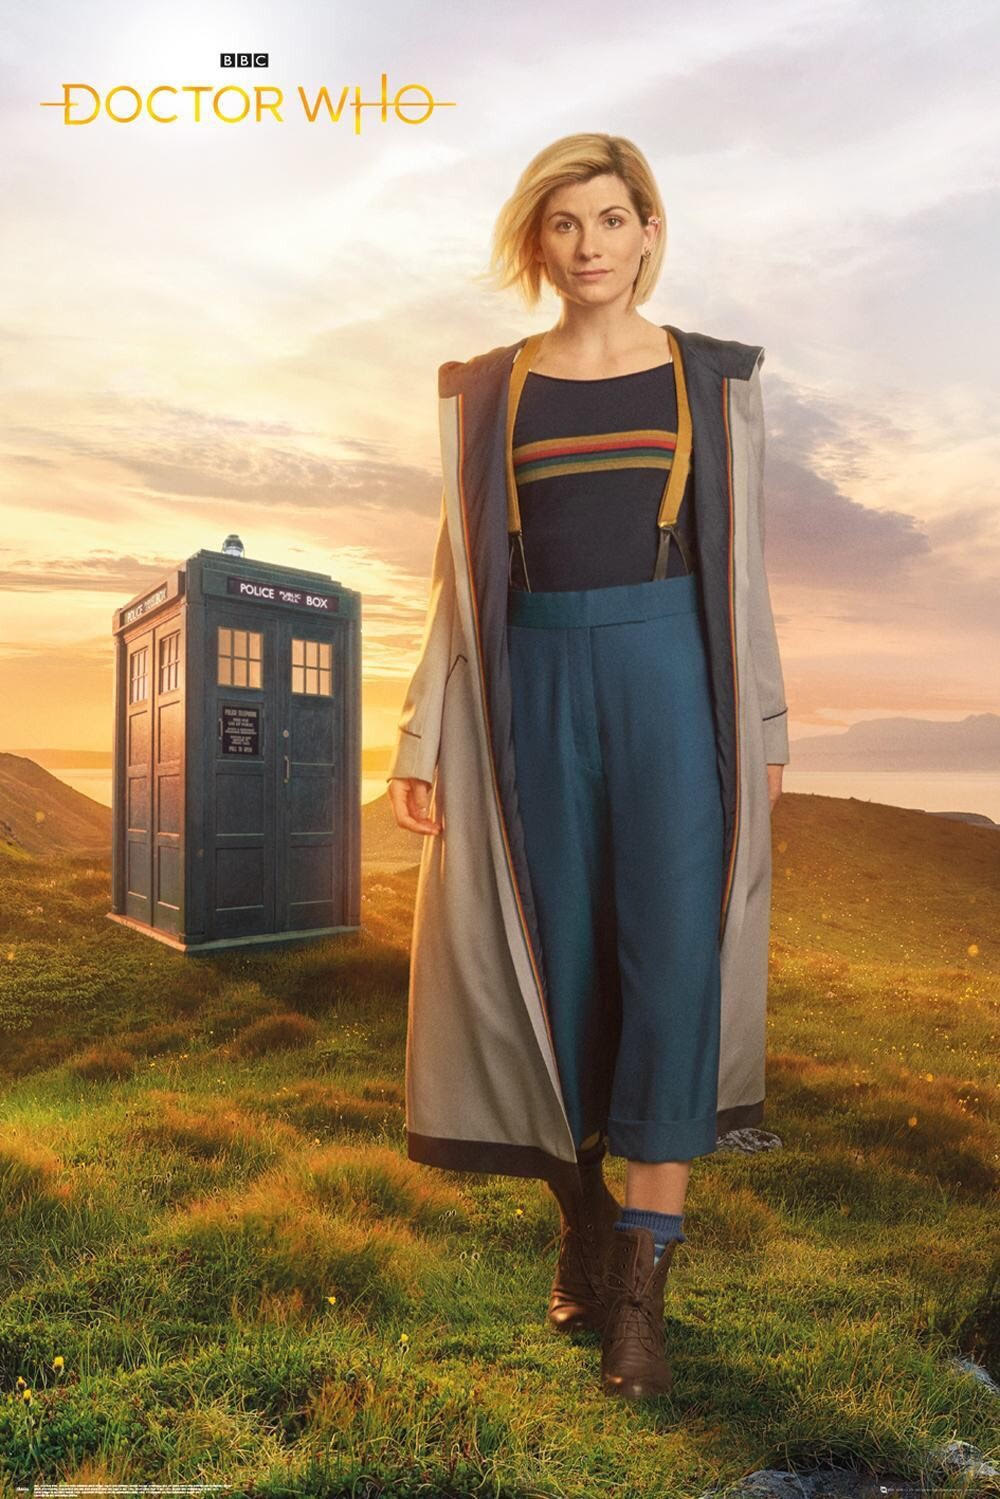 Jodie Whittaker poses as the 13th doctor in the show Doctor Who. Whittaker is the first female to play the lead role of the time lord in 55 years.